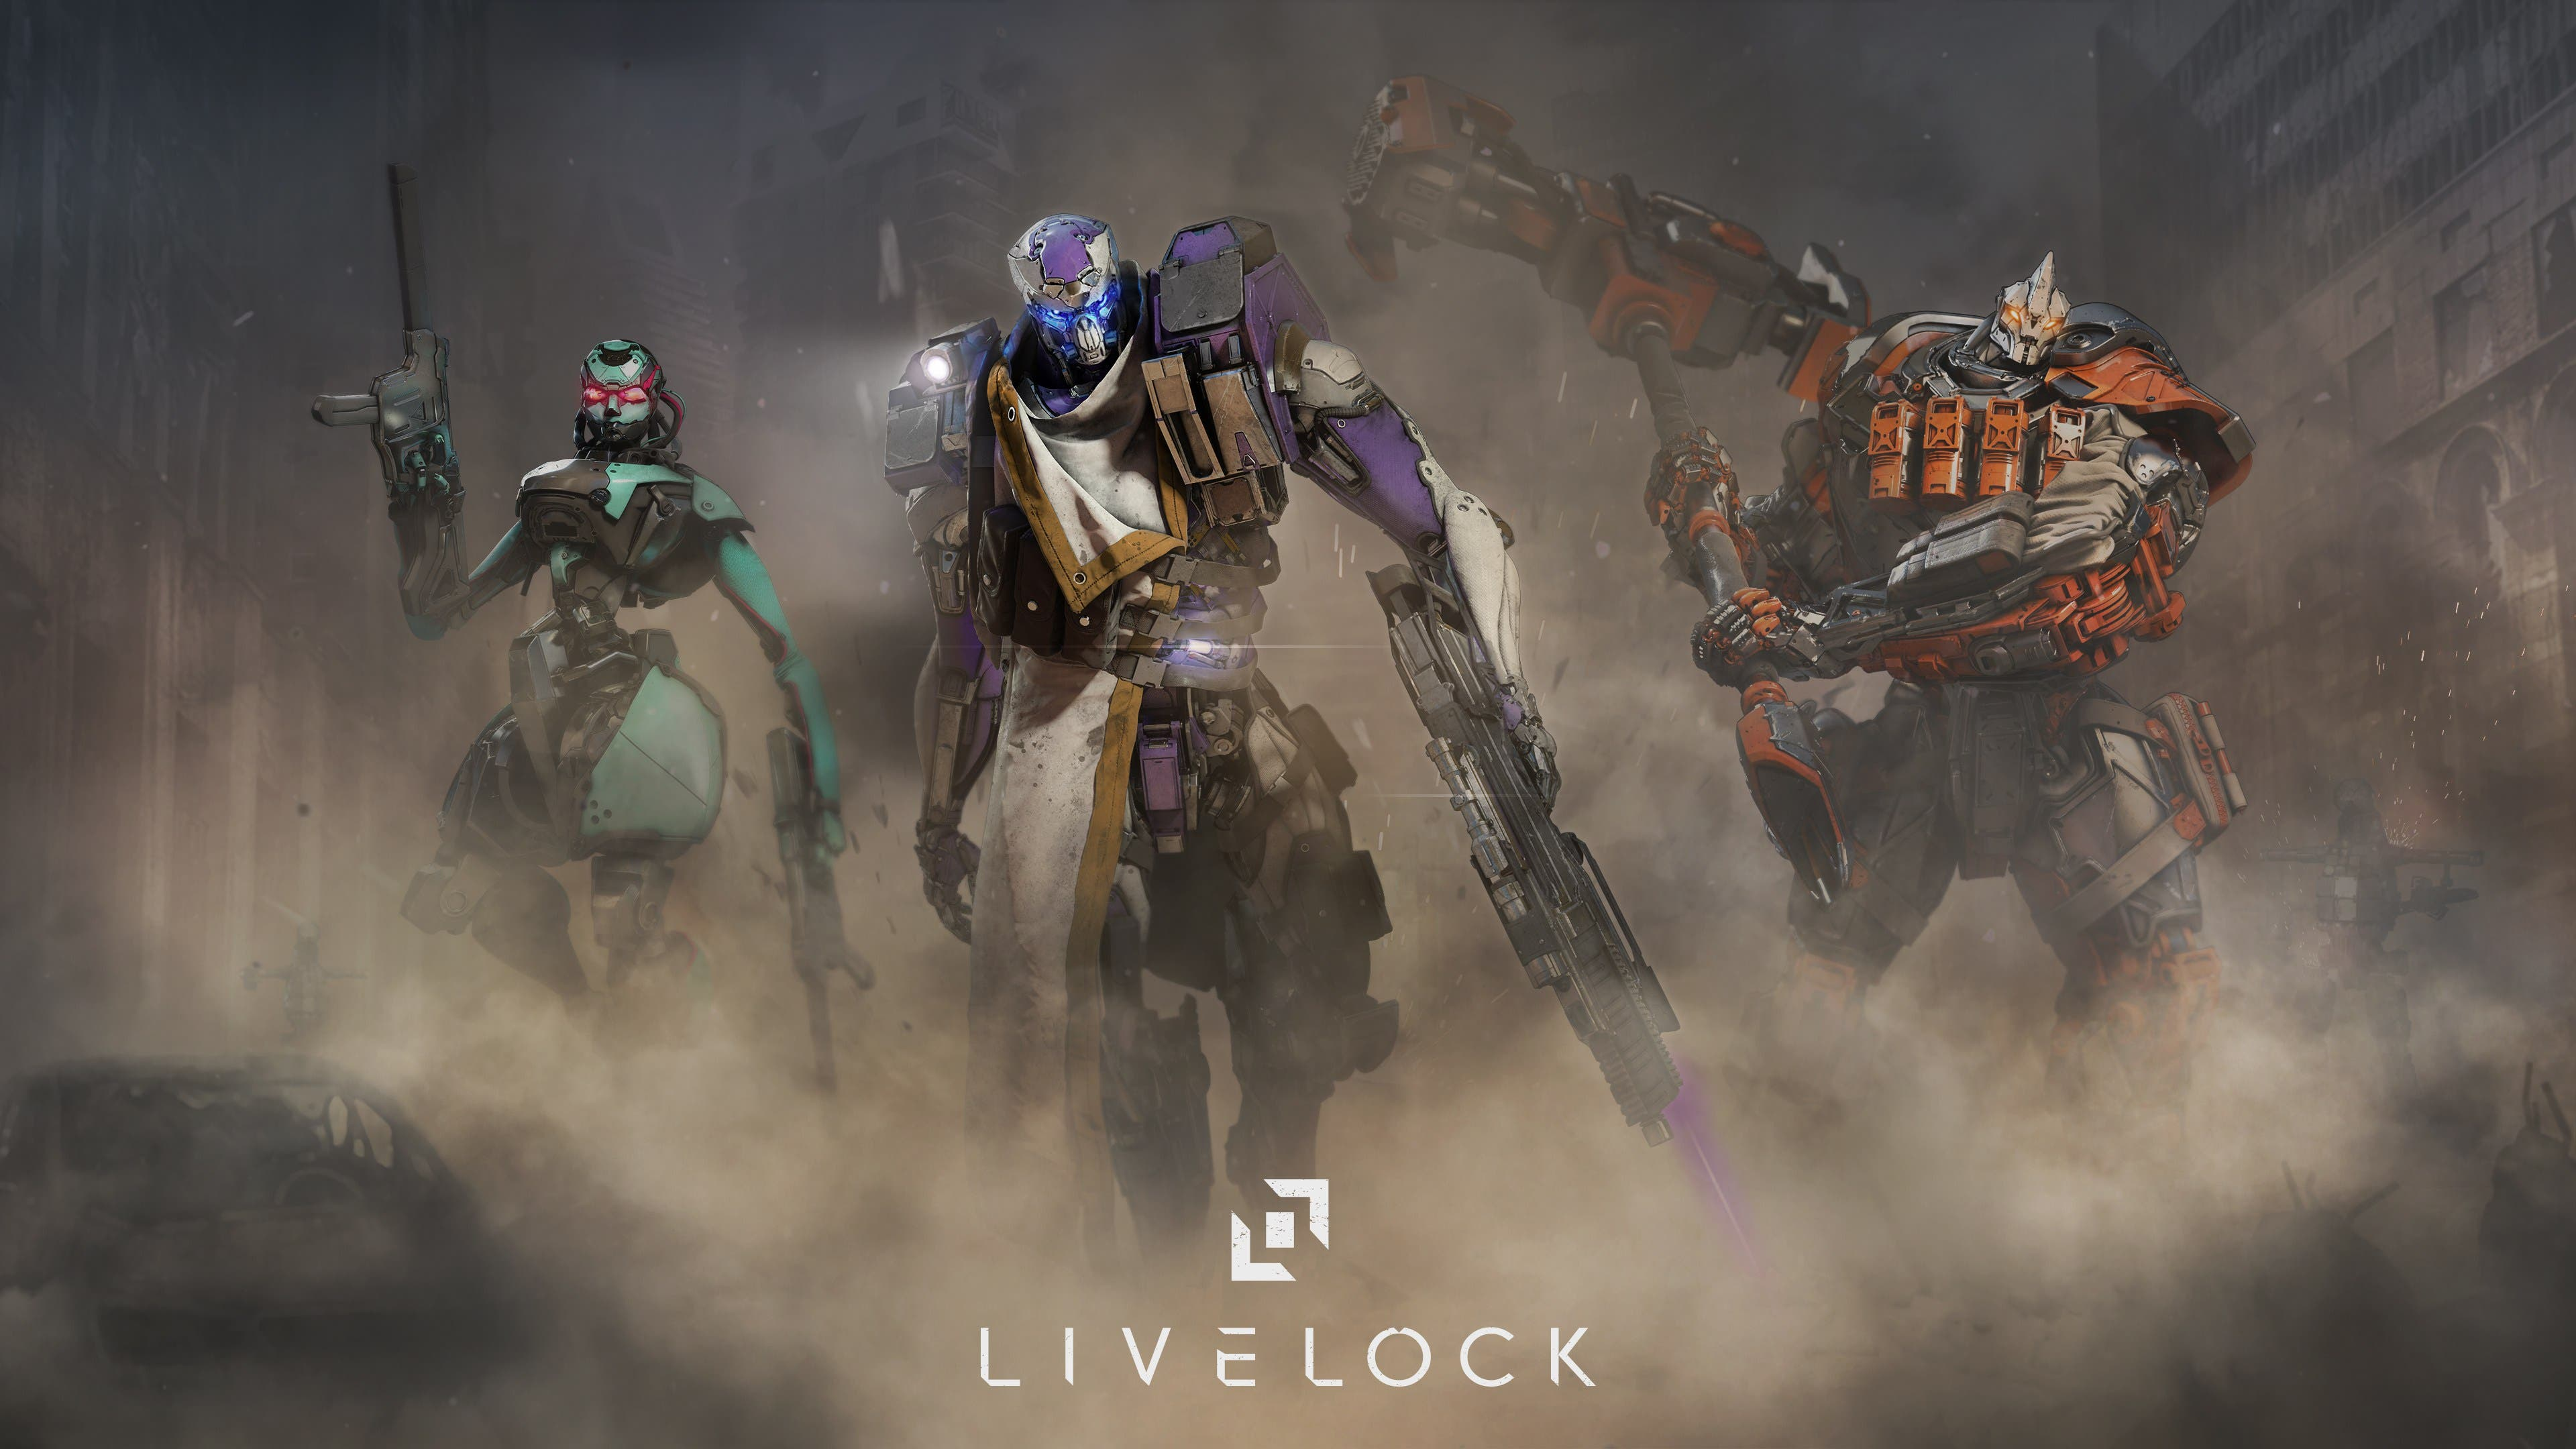 Livelock featured